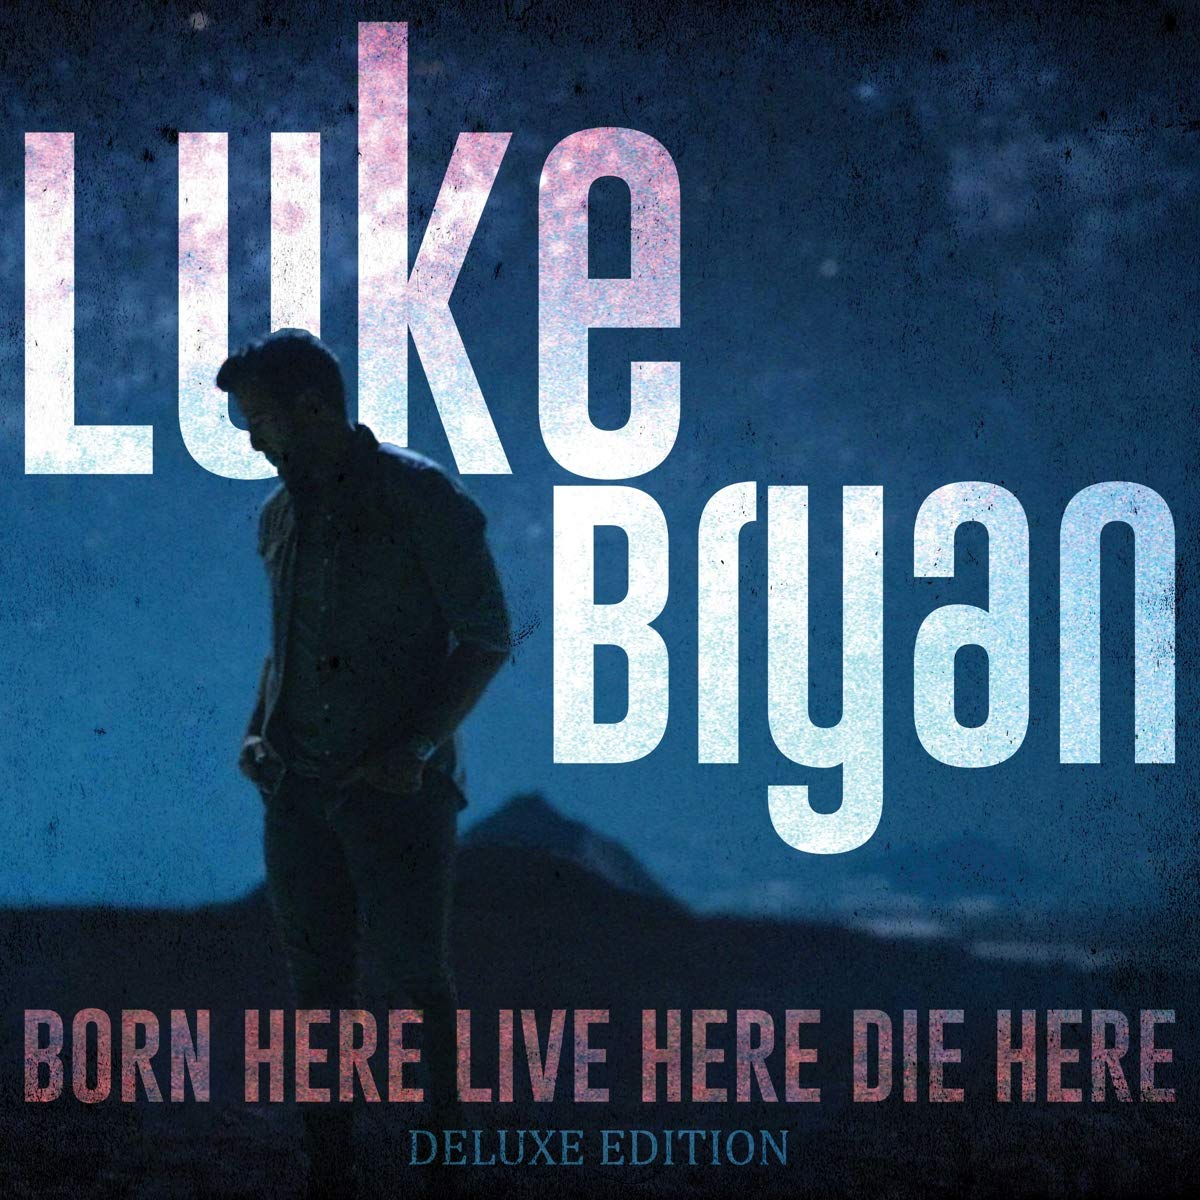 Luke Bryan - Born Here Live Here Die Here (Deluxe Edition)